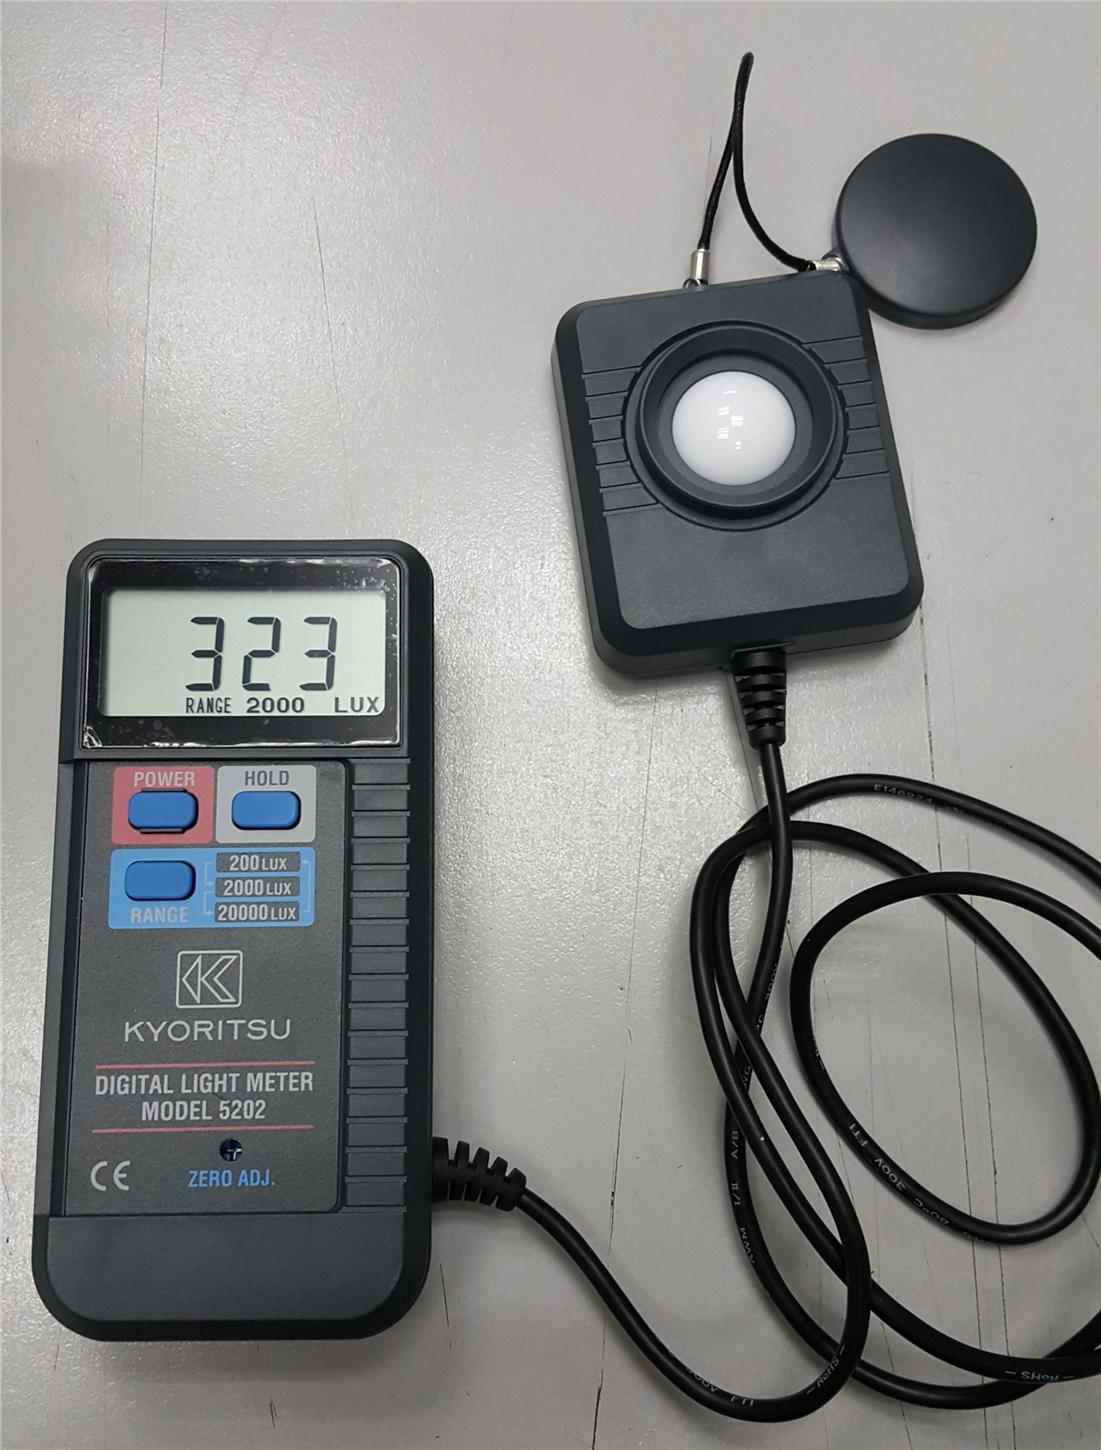 Kyoritsu 5202 Digital Light Meter (200/2000/20000lux)